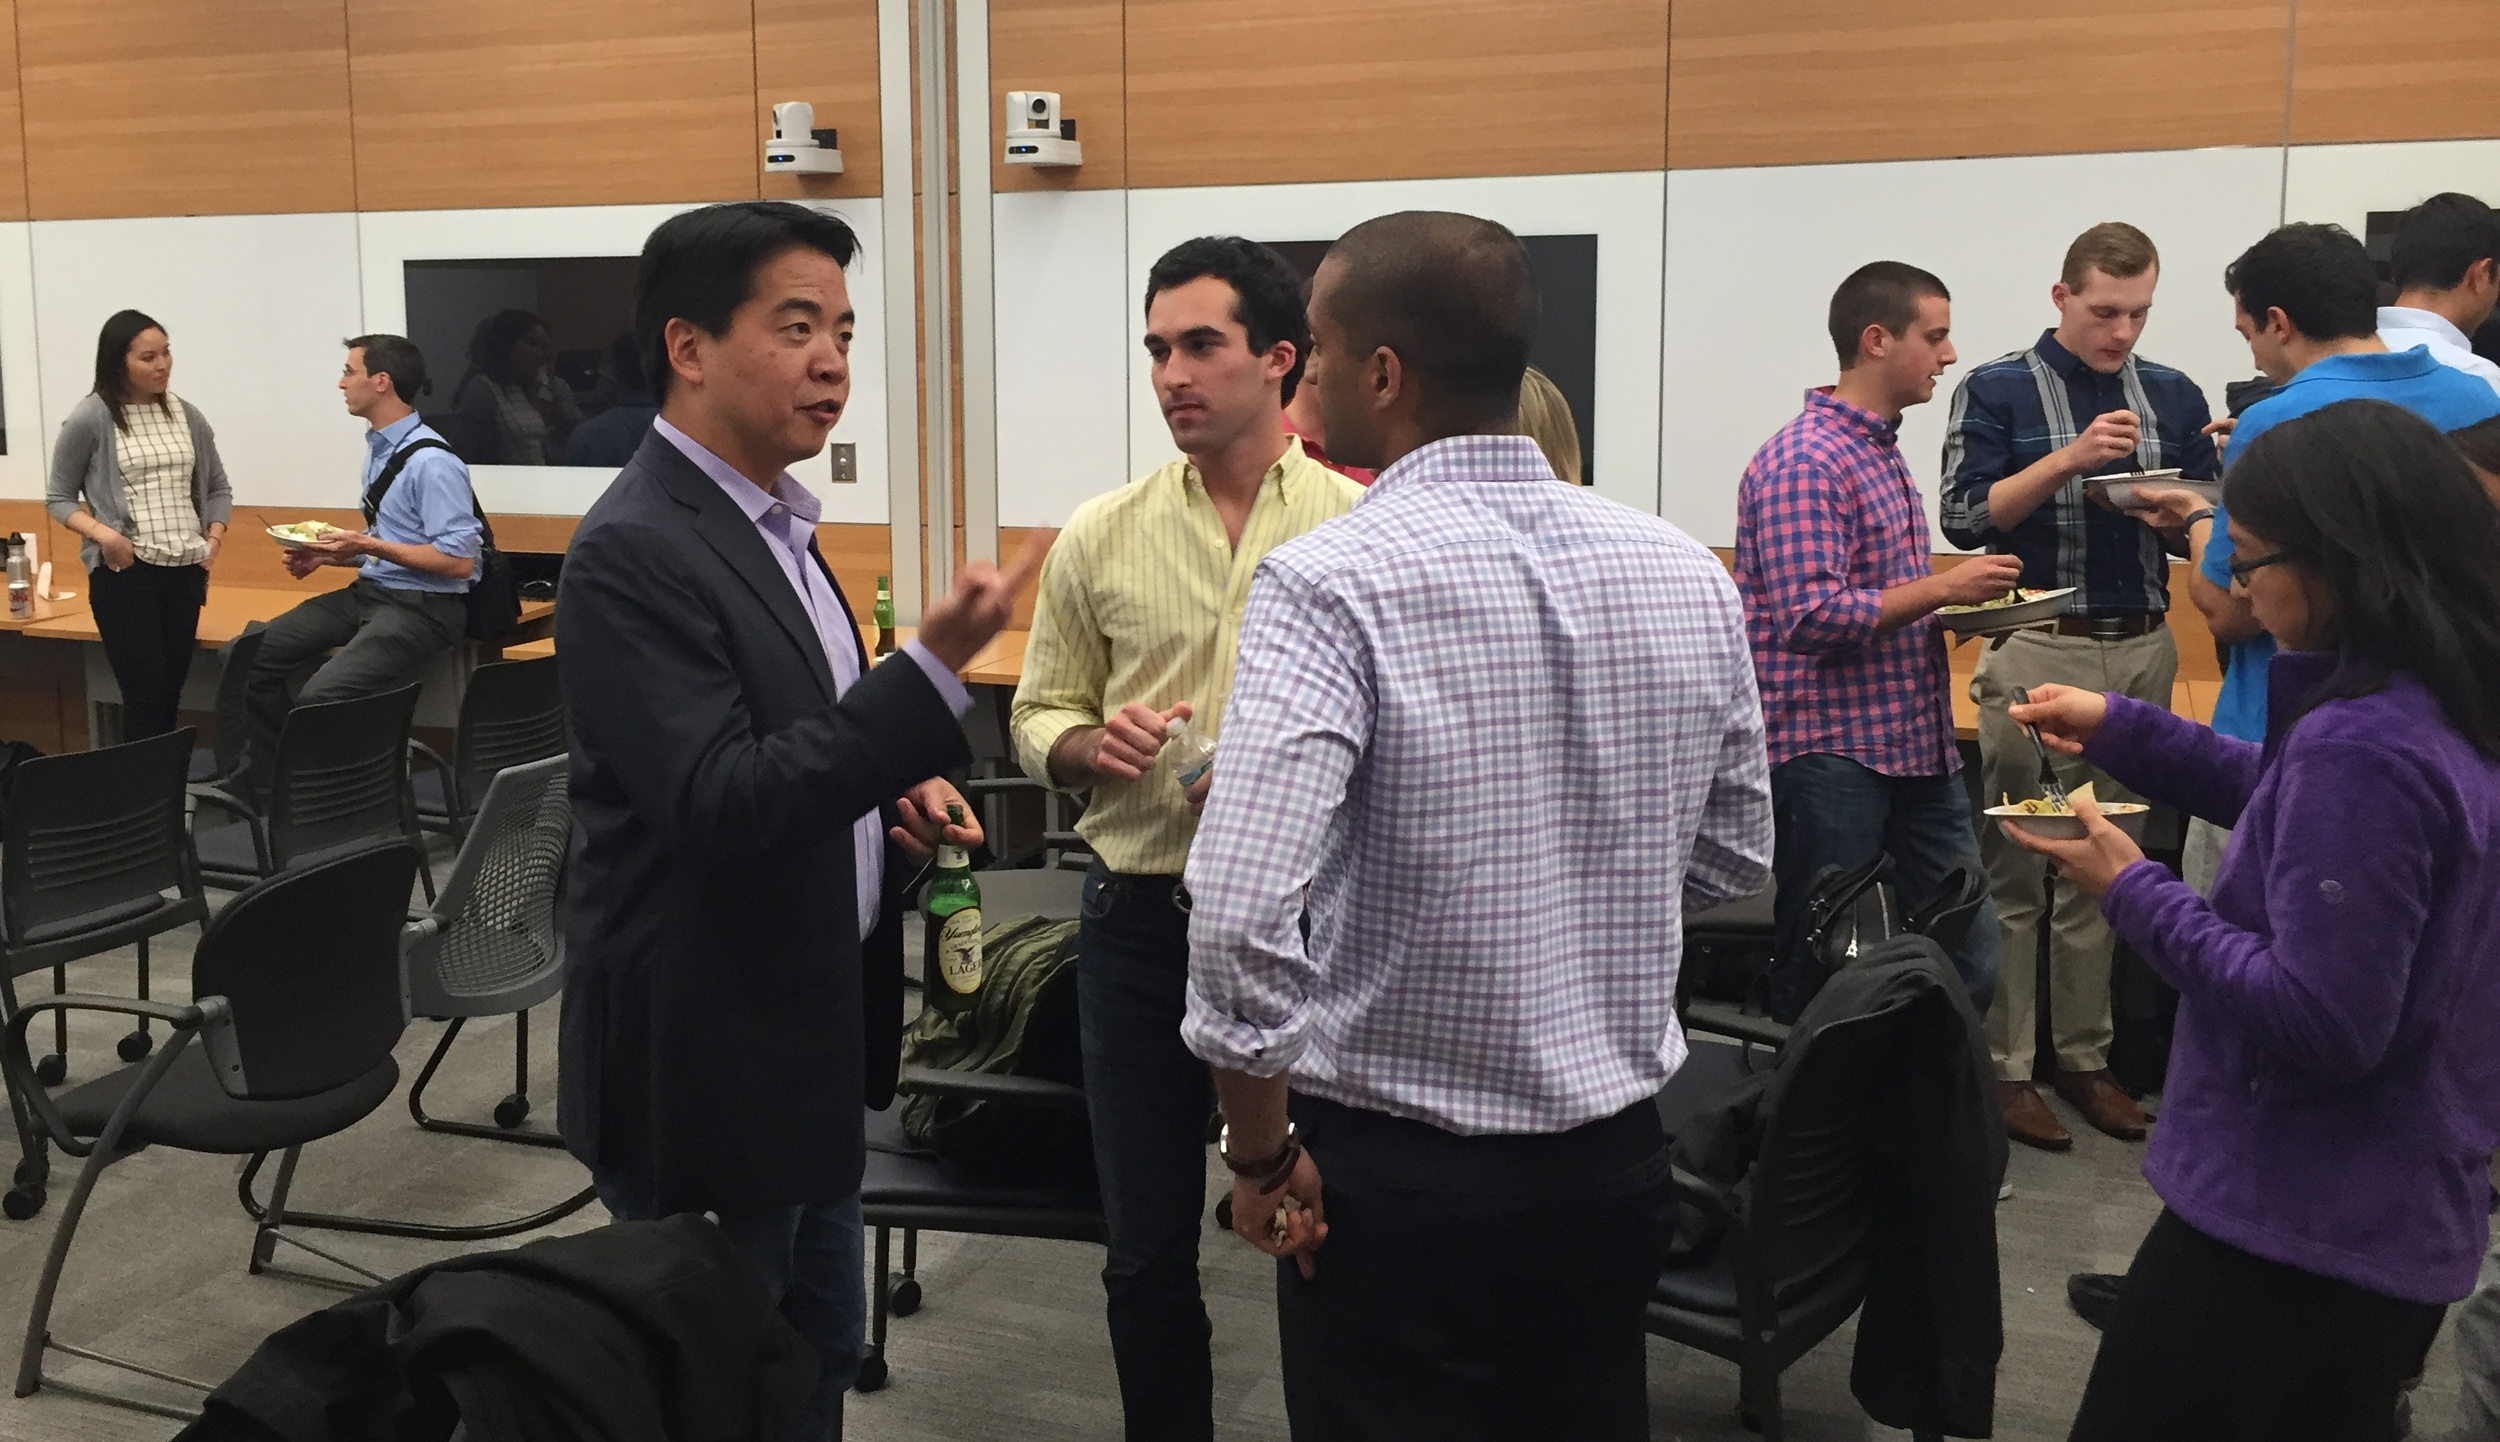 Lorence Kim, M'99, WG'99, speaks to Alex Rosen, M'16, WG'16, and Vinayak Nikam, M'17, WG'17.